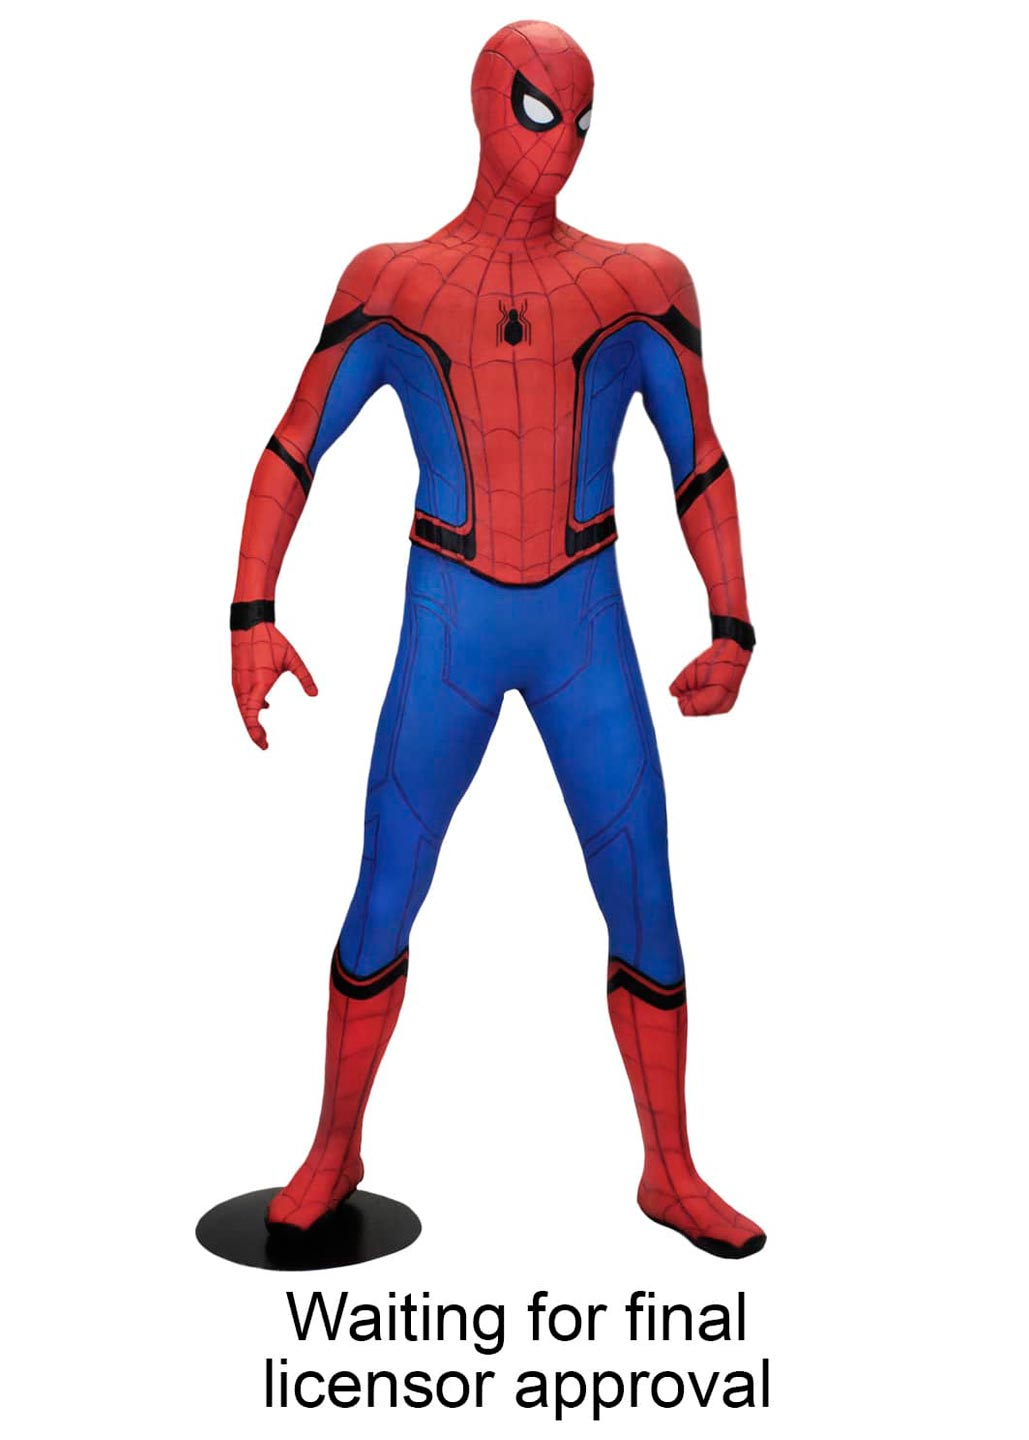 SPIDER-MAN LIFE SIZE LATEX REPLICA 1,58 METROS SPIDER-MAN HOMECOMING